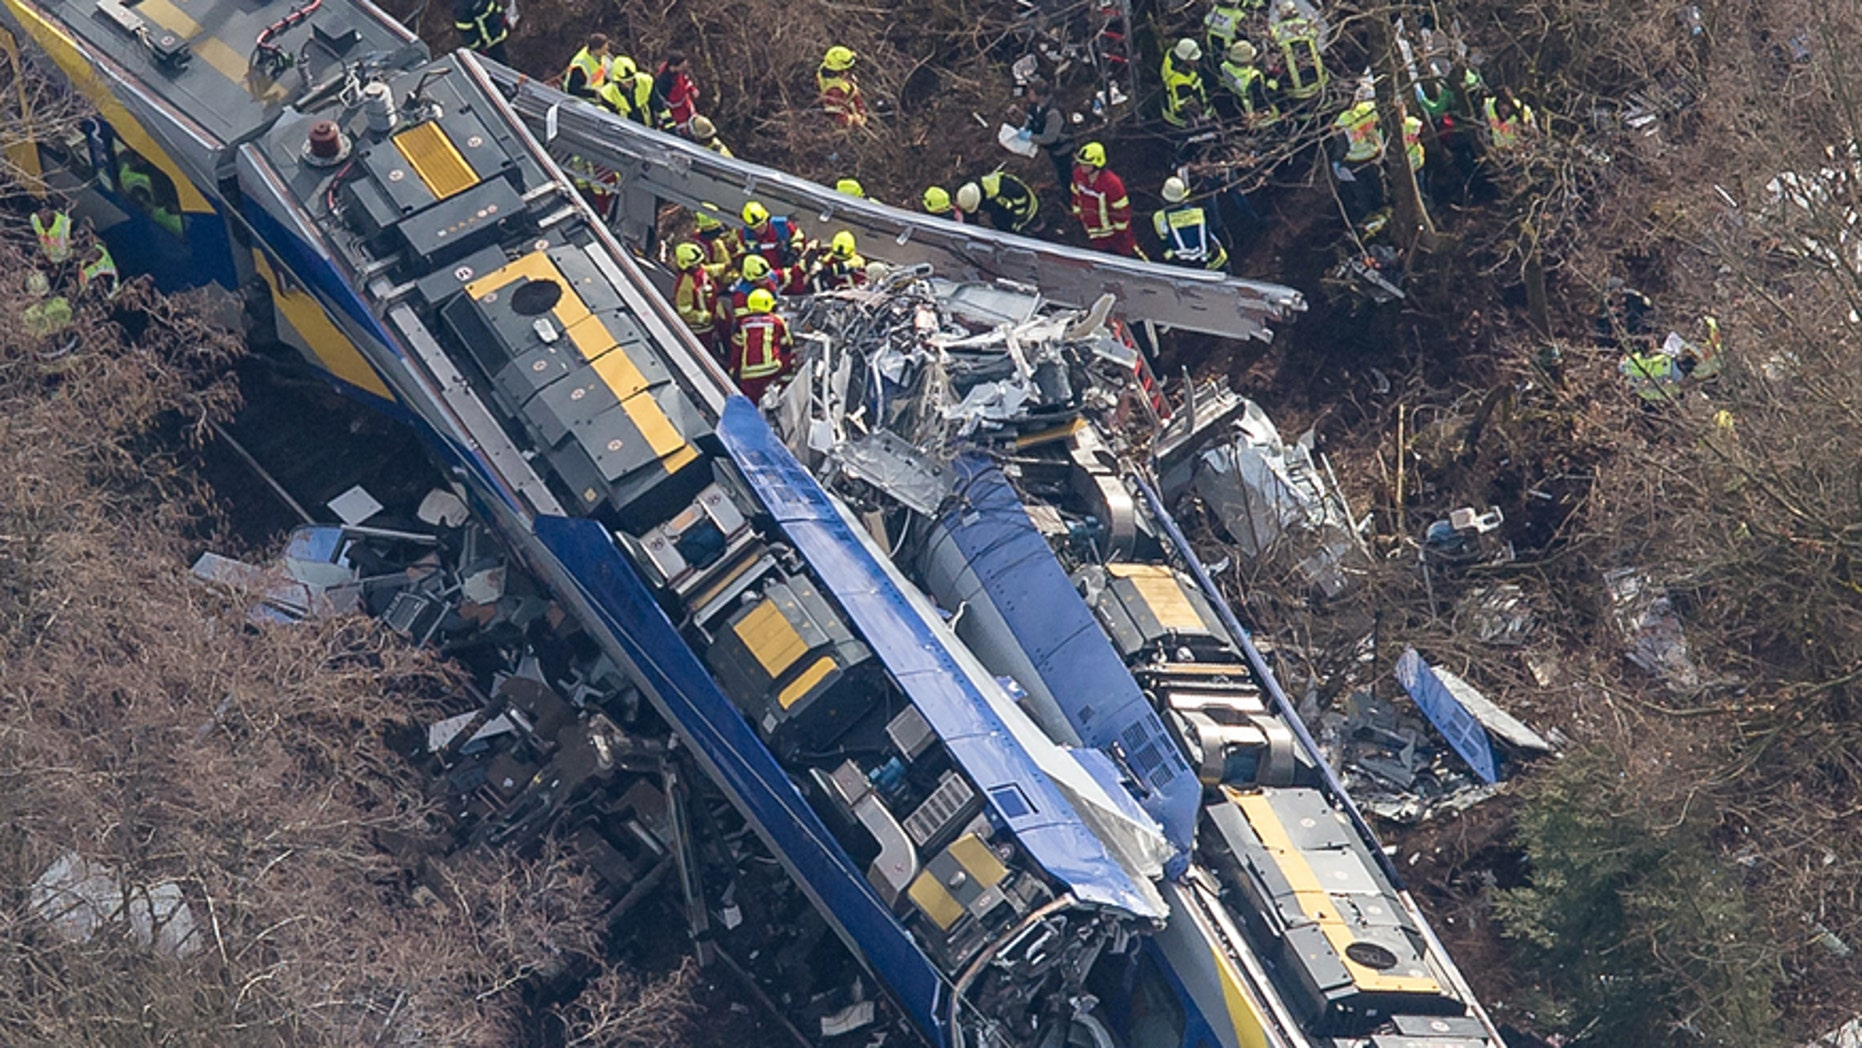 Aerial view of rescue forces working at the site of a train accident near Bad Aibling, Germany, Tuesday, Feb. 9, 2016. Several people were killed when two trains collided head-on. (Peter Kneffel/dpa via AP)